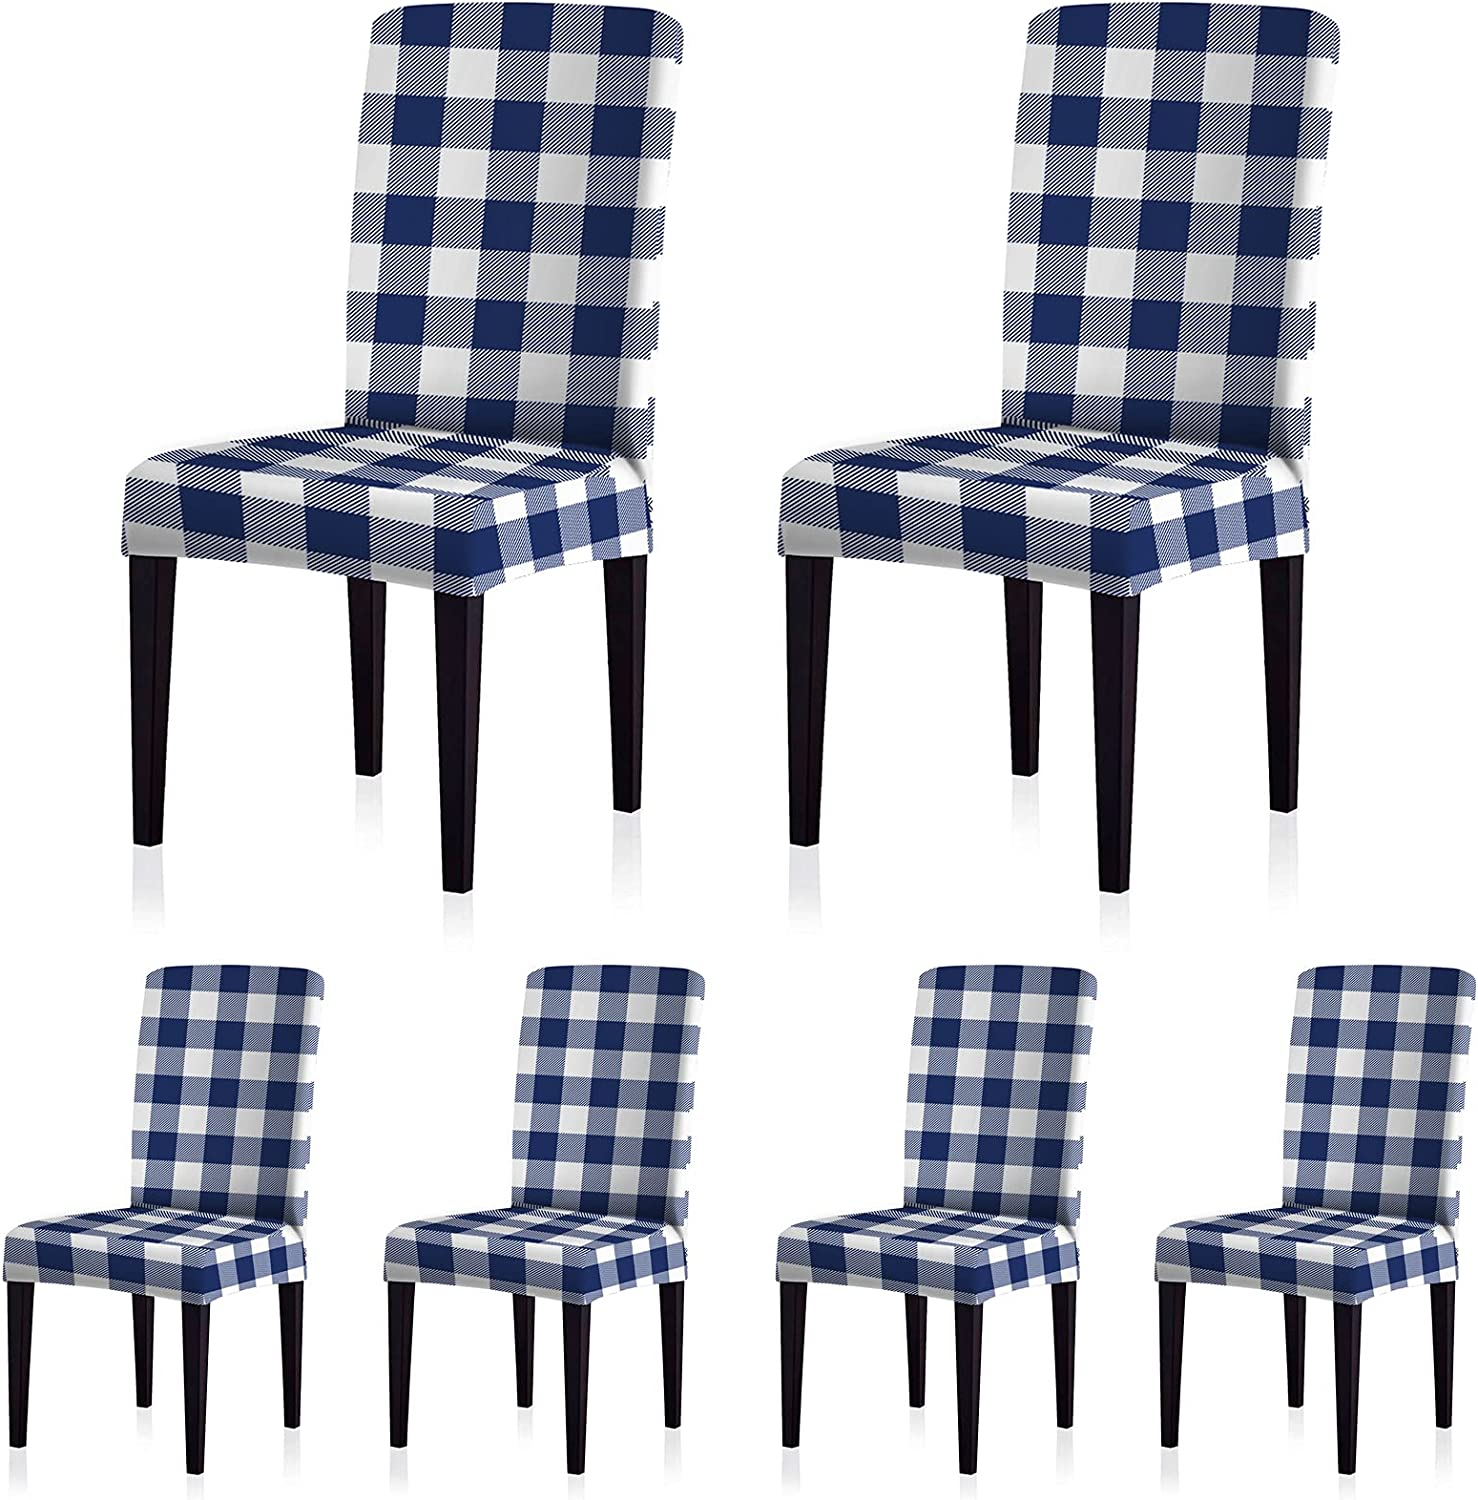 ColorBird Buffalo Check Spandex Max 47% OFF Chair Max 64% OFF Removable Unive Slipcovers